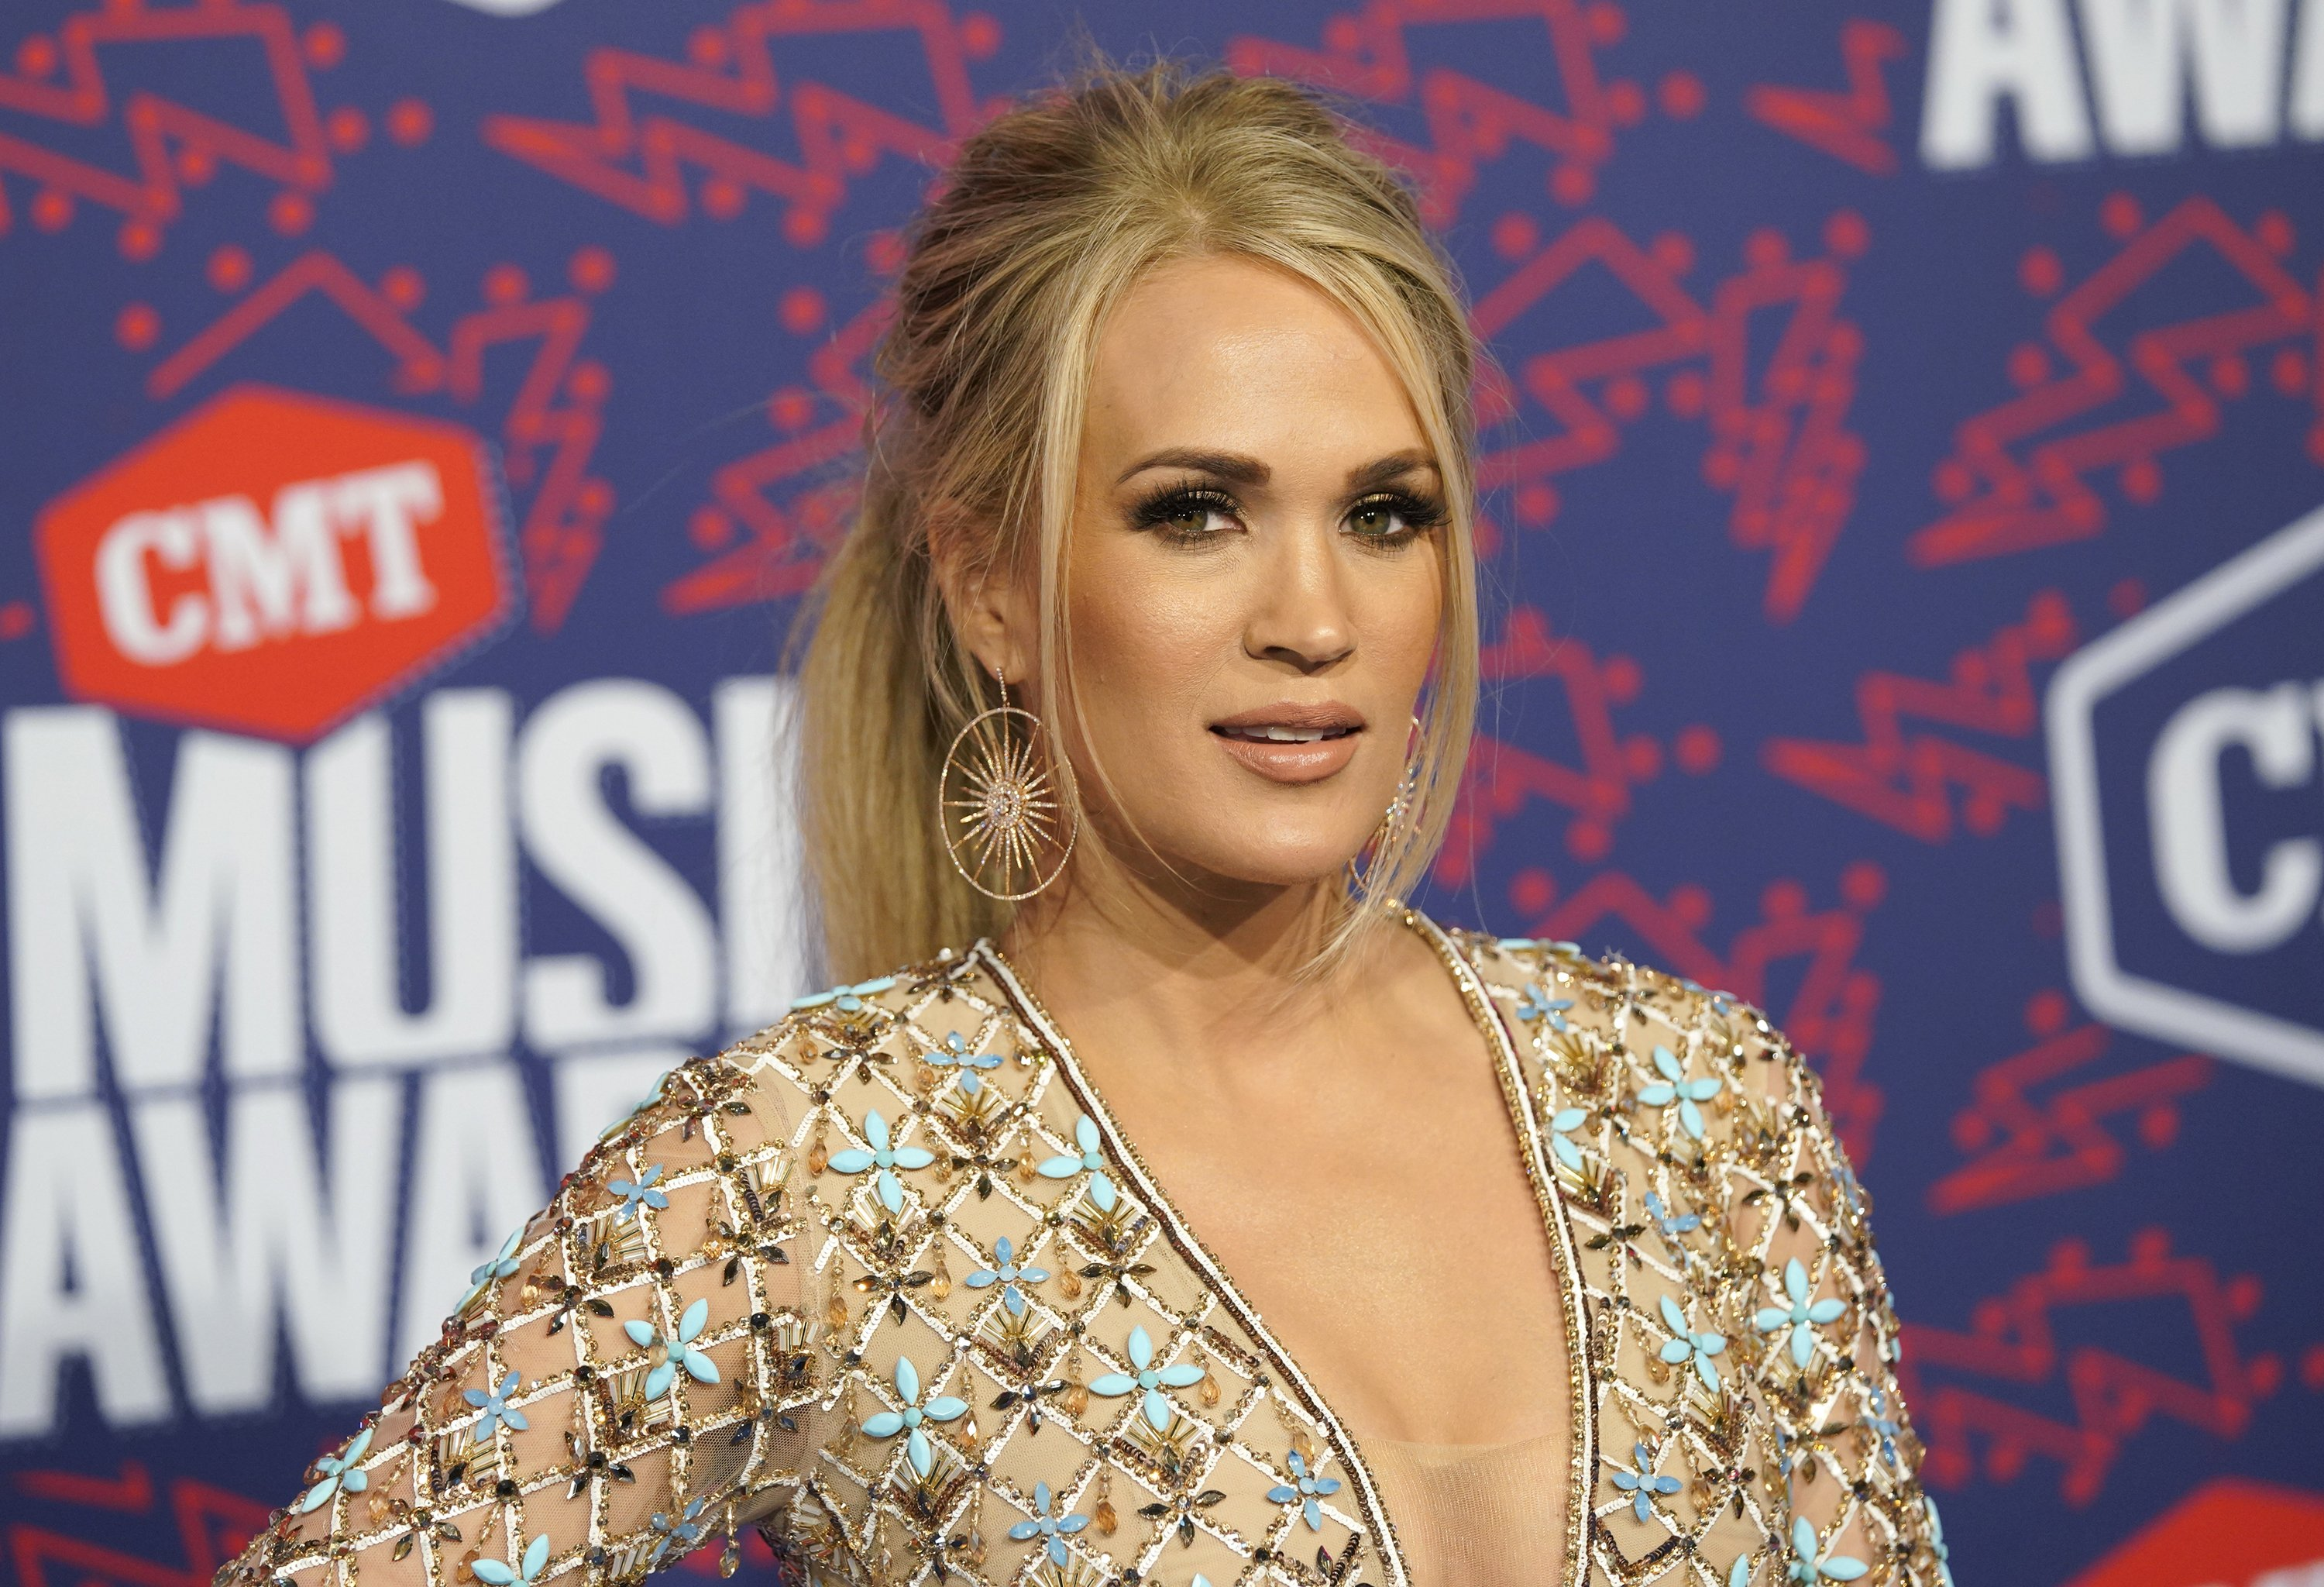 Carrie Underwood wins big at CMT Awards, Tanya Tucker performs